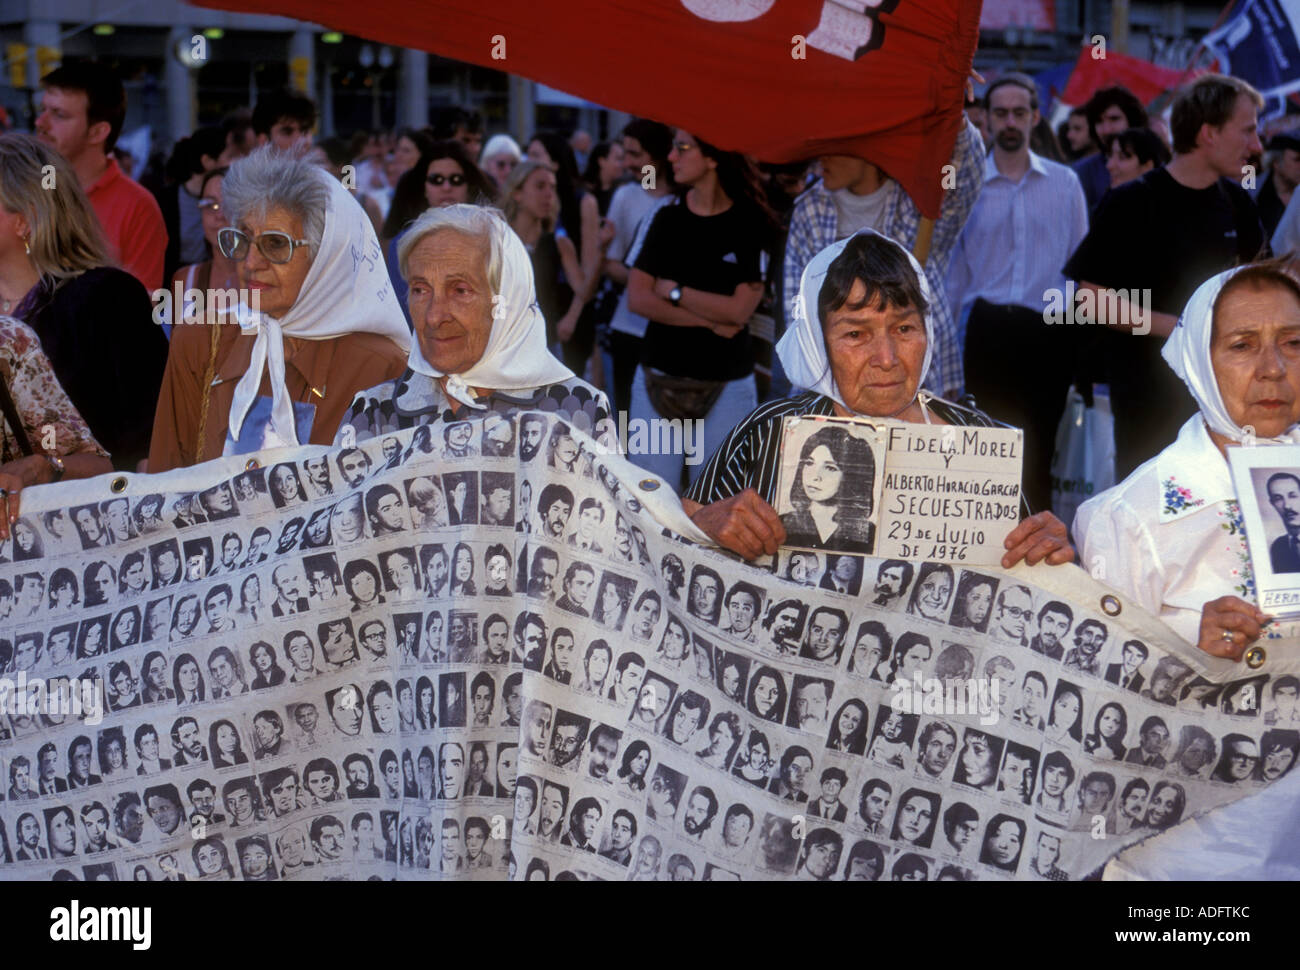 Argentine mothers, madres de la Plaza de Mayo, protesting, protest march, Plaza de Mayo, city of Buenos Aires, Argentina Stock Photo